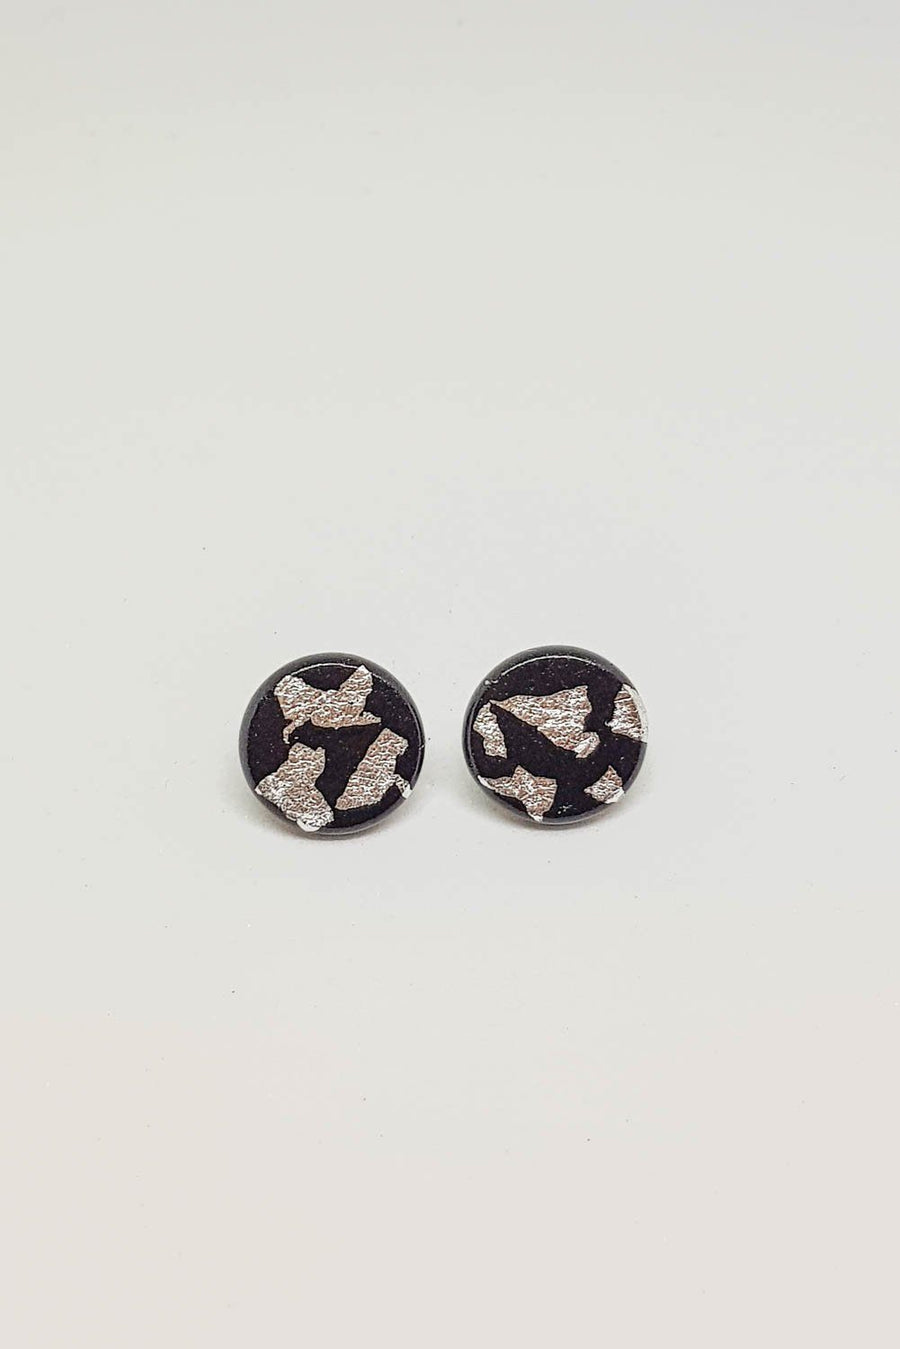 Studs | Black With Silver 15 mm Earrings Gray.Label